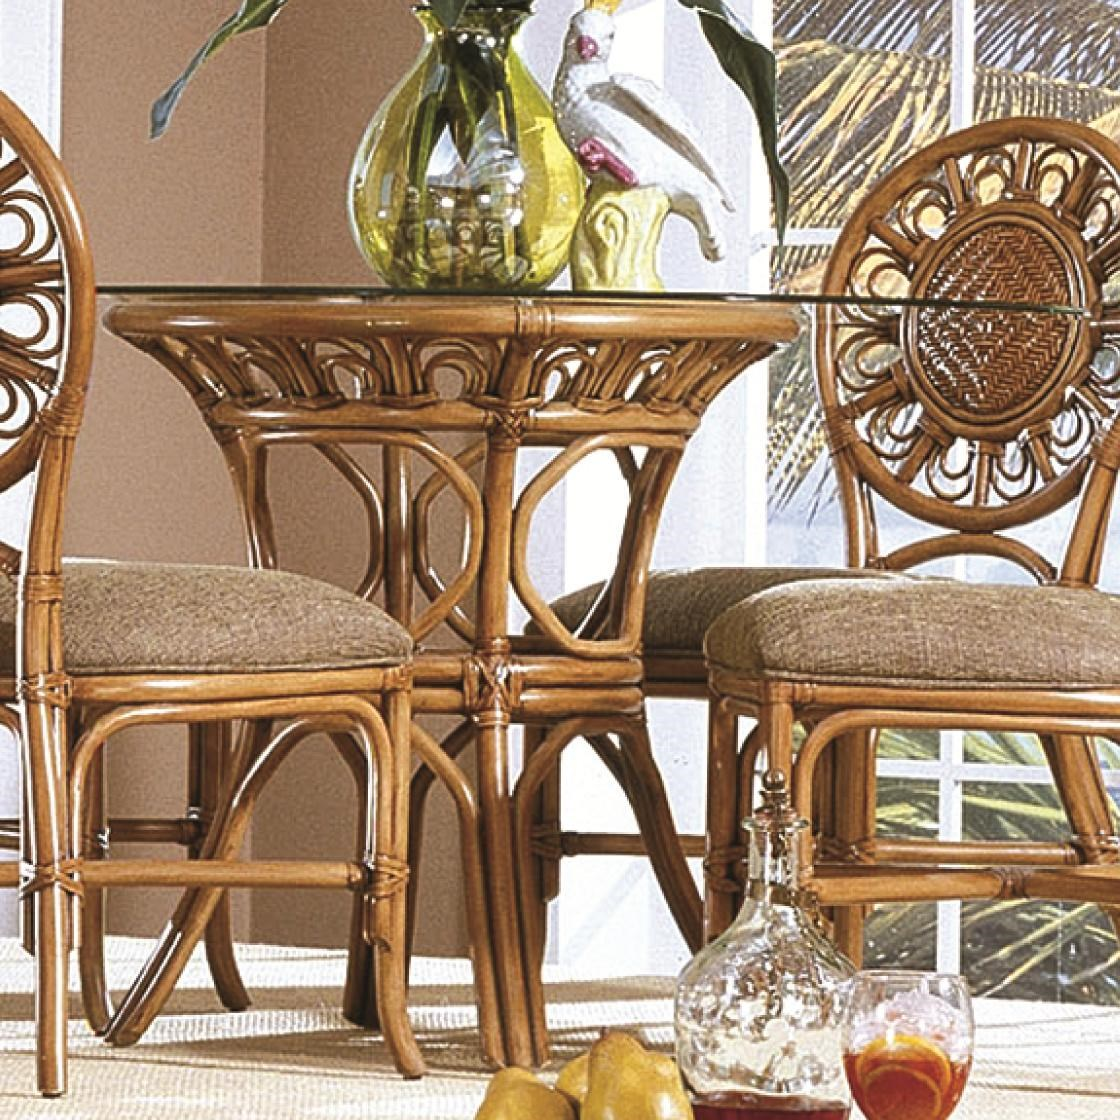 Capris Furniture 321 Collection Glass Top Wicker Rattan Round Table    Hudsonu0027s Furniture   Kitchen Table